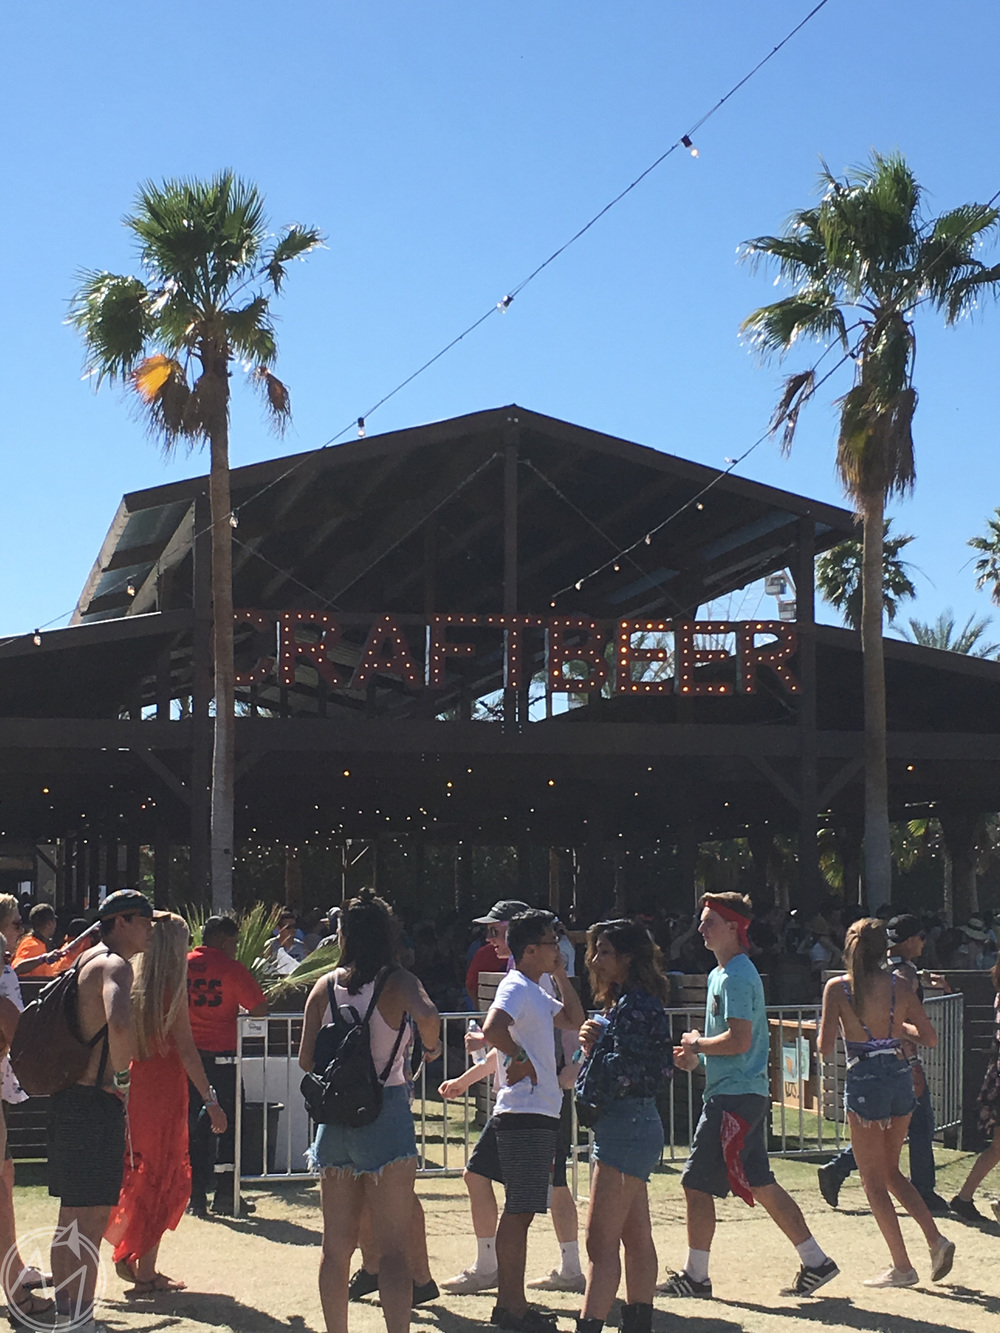 a definite highlight of coachella, in my opinion, is the craft beer barn, which has a ton of local brews. my favorite of the weekend was hello, la IPA. so wish i could have taken some home with me!